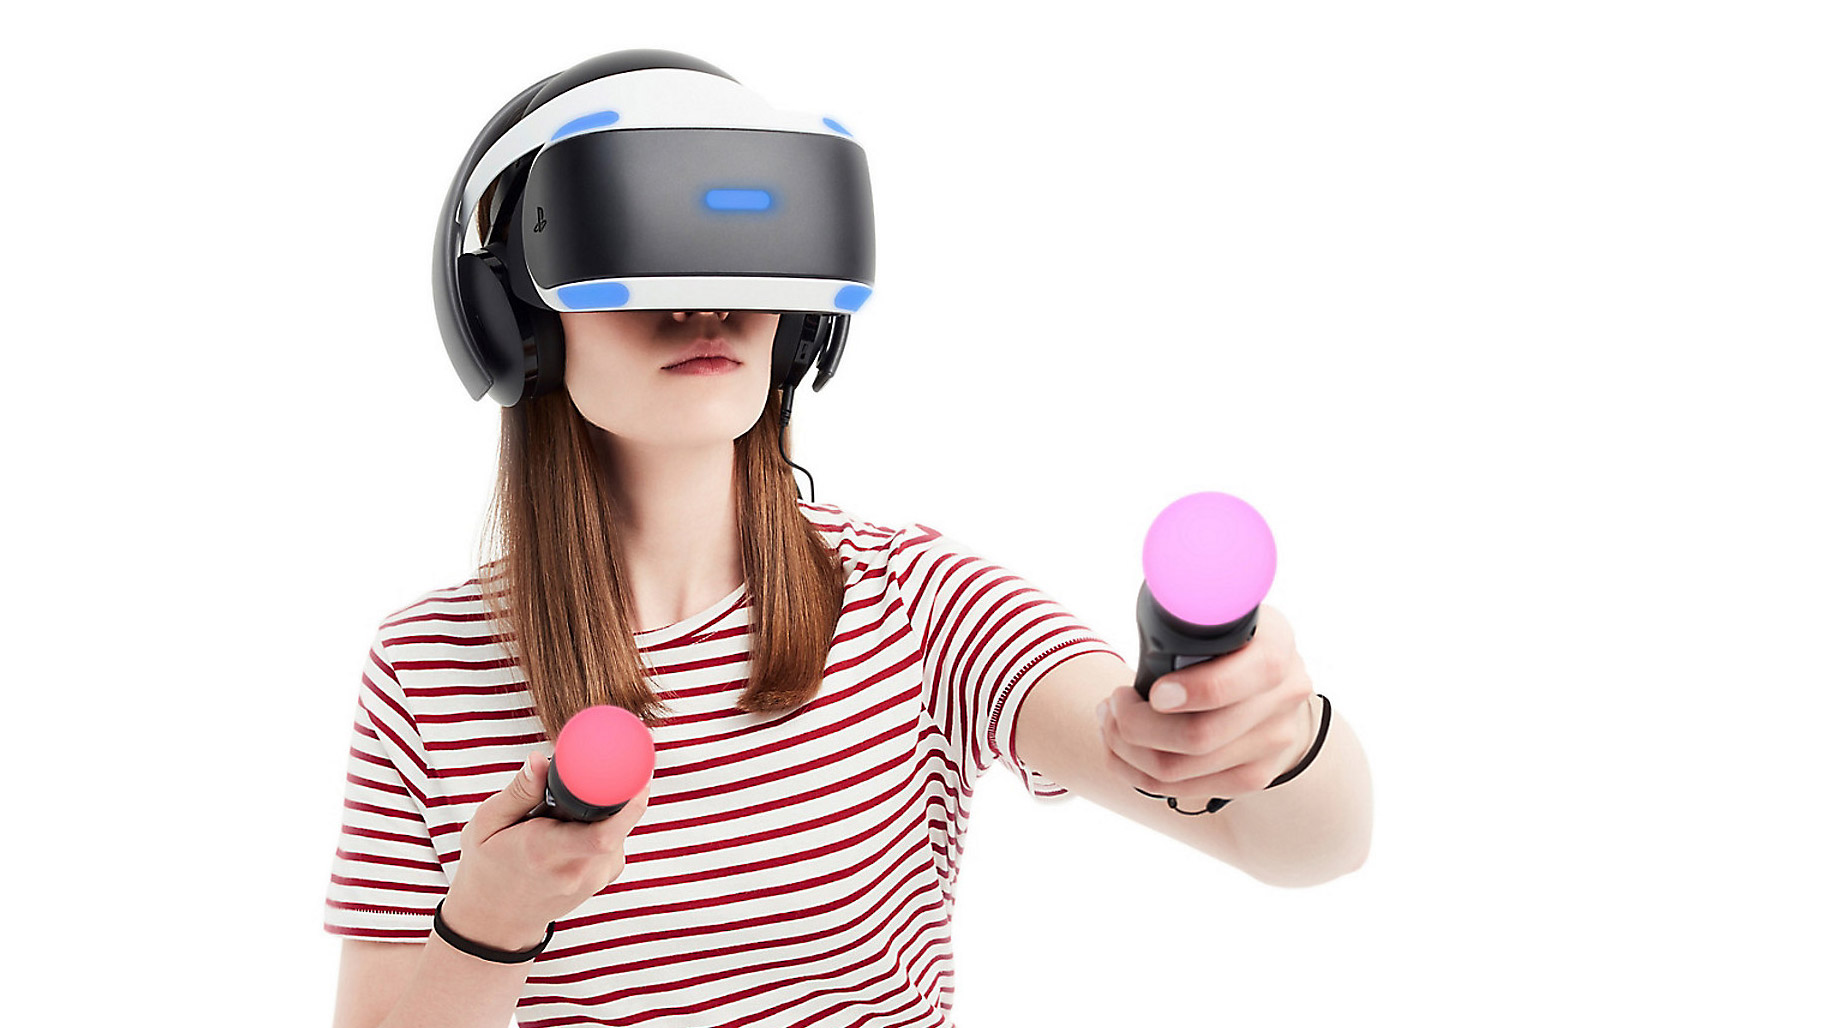 Sony Hints PSVR 2 Could Bring HDR, Wireless, Eye-tracking & More